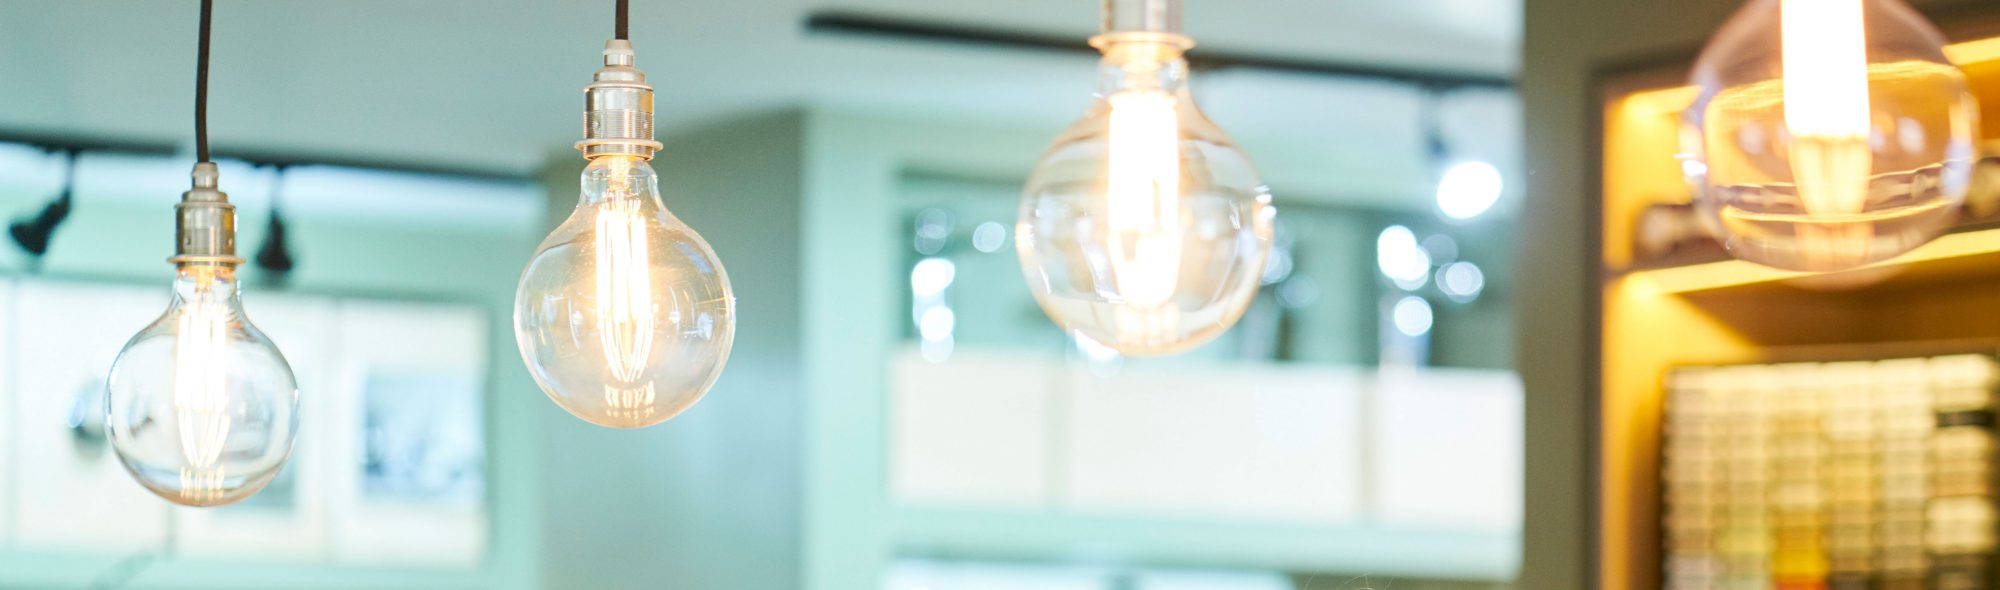 Exposed bulb lighting close up